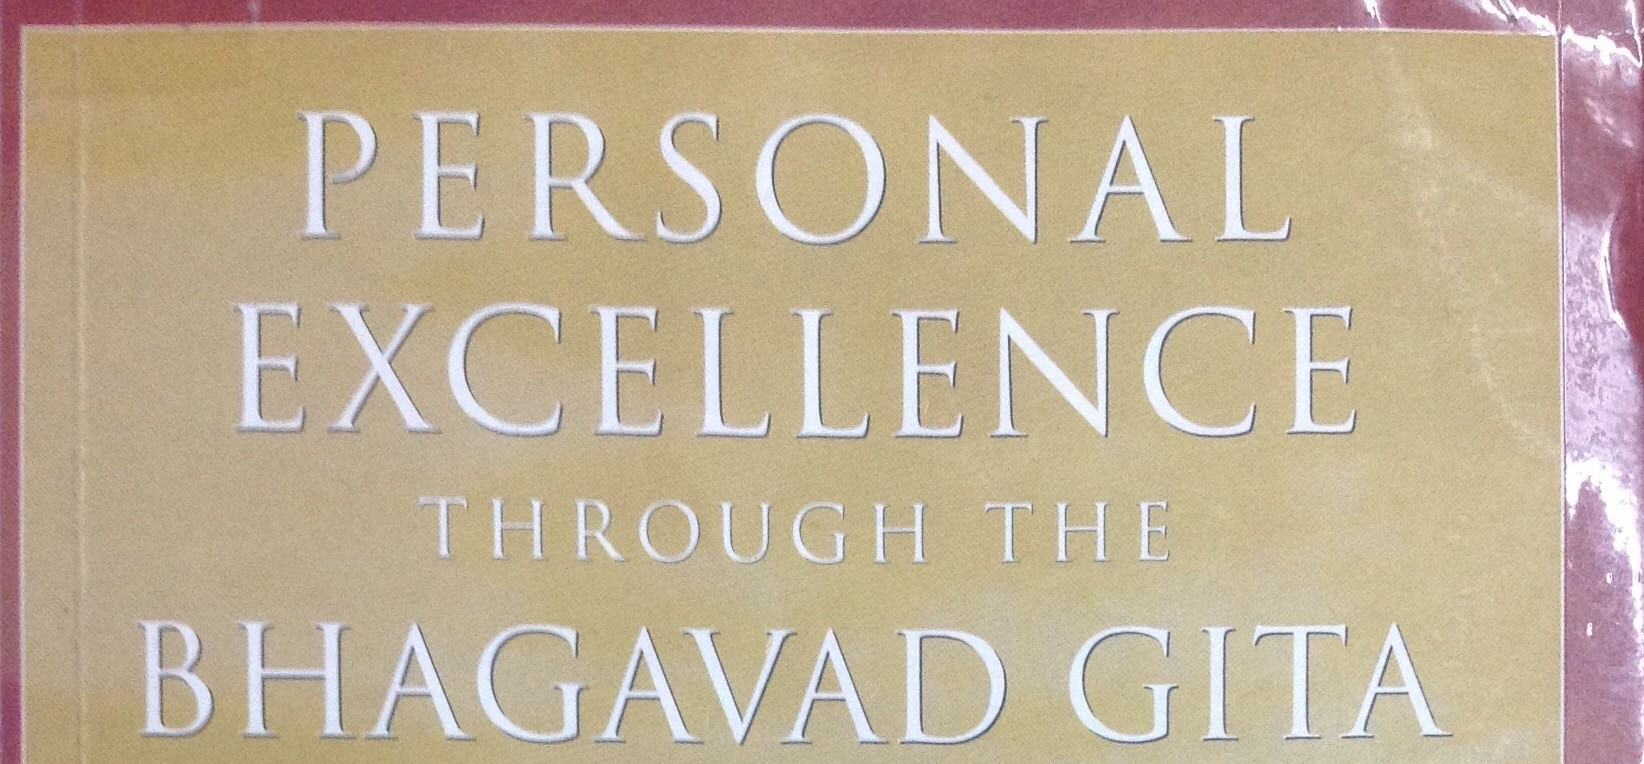 'Personal excellence through the Bhagavad Gita' by Swami Sukhabodhananda: Part2